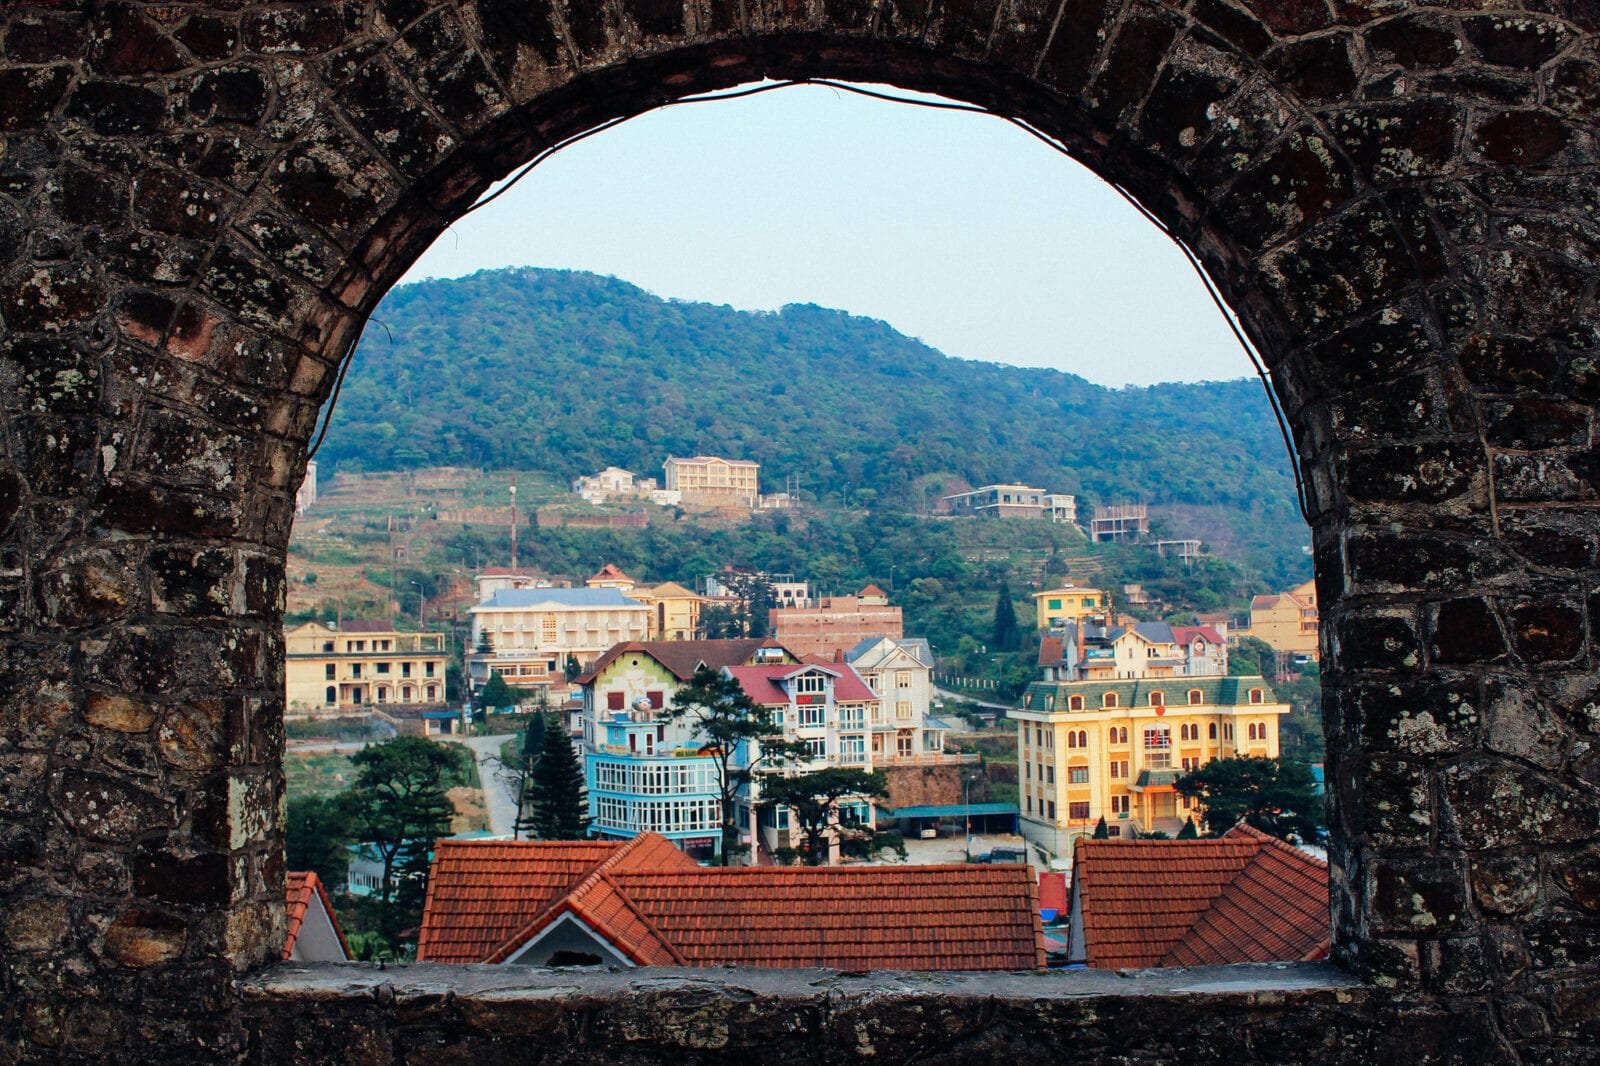 Image of Tam Dao looking through a stone window in Vietnam